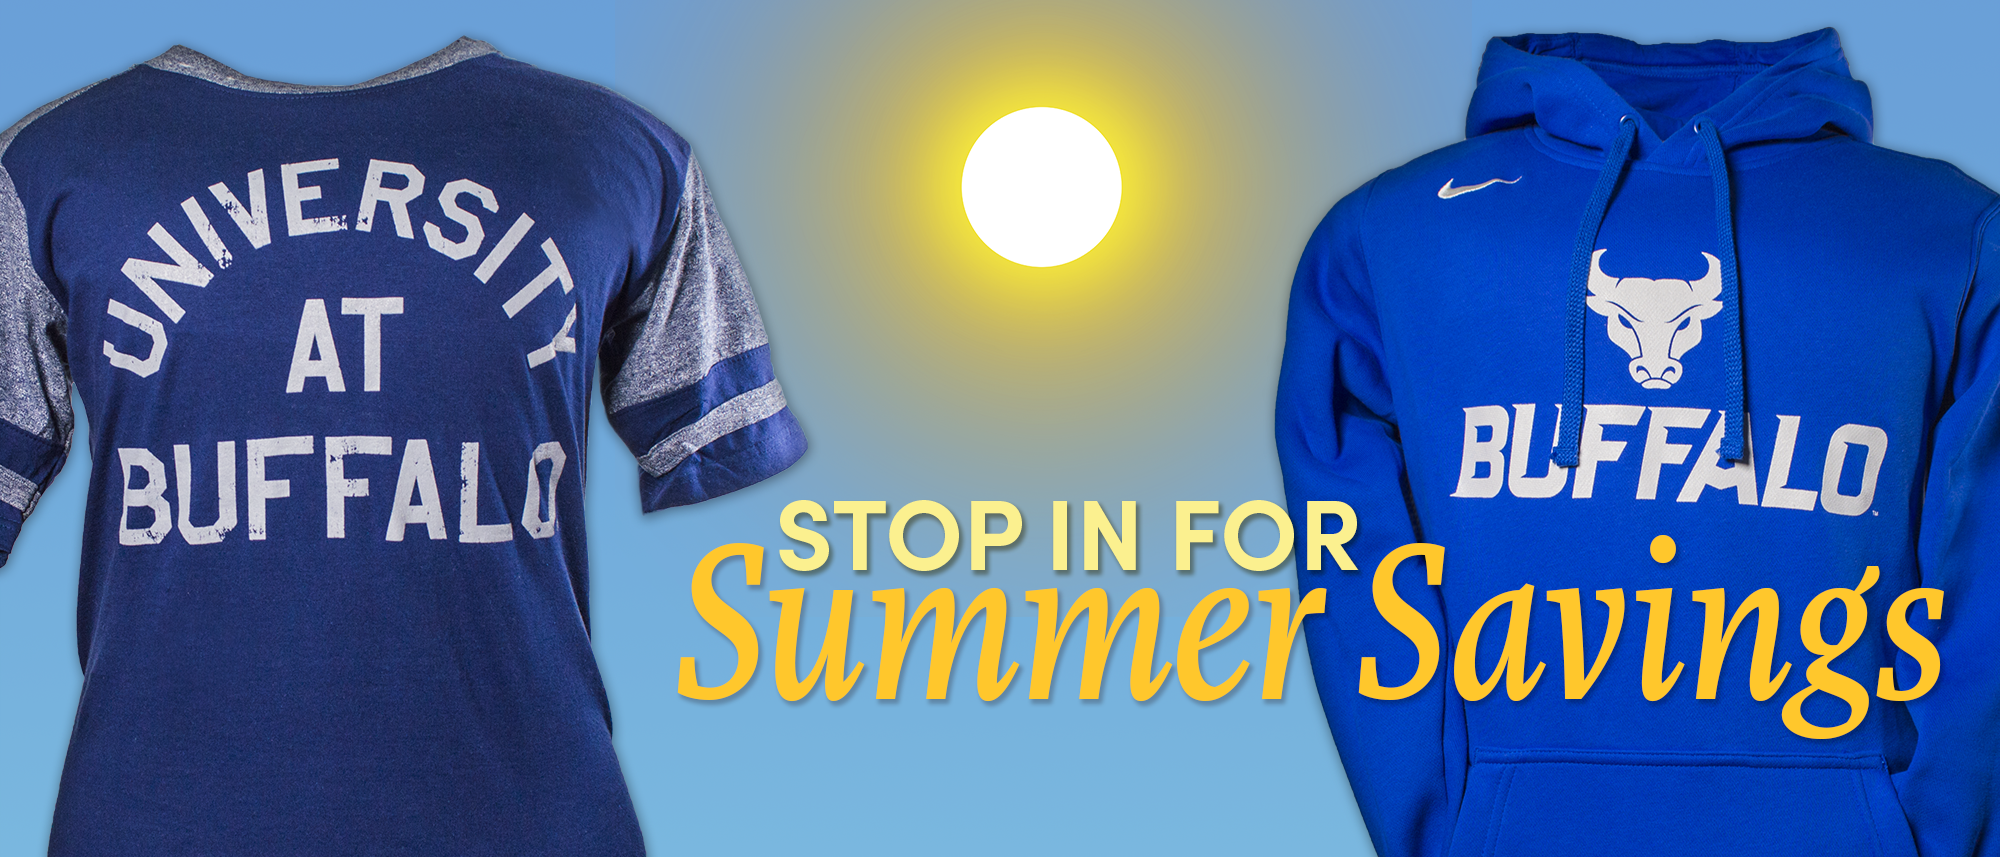 Stop in for summer savings.